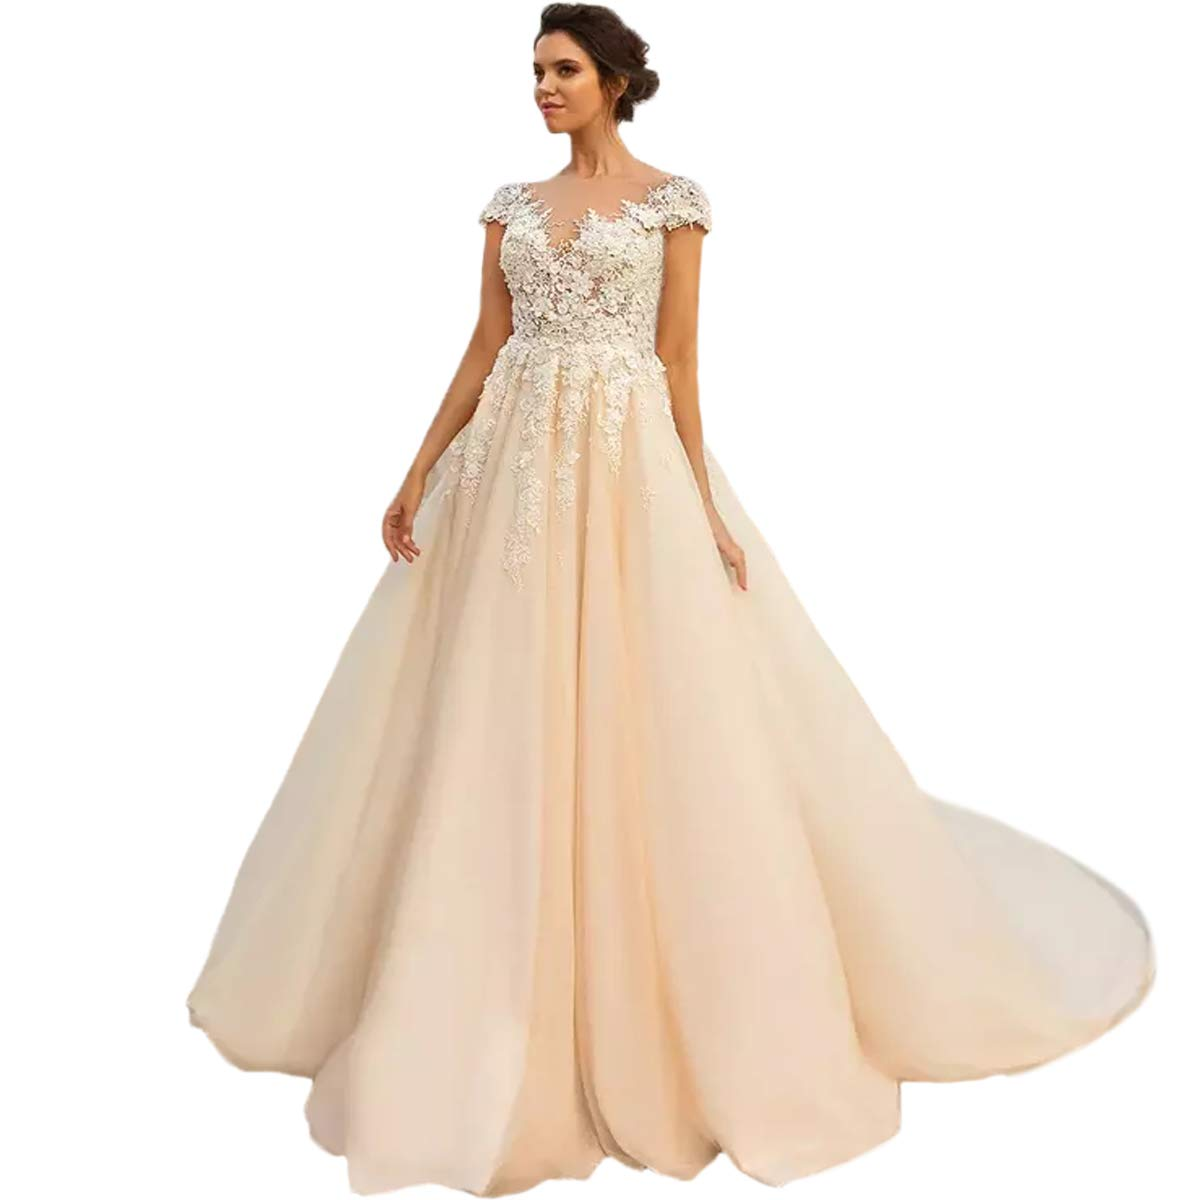 Dimei Sweetheart Lace Short Sleeve Ball Gown Wedding Dresses Sheer